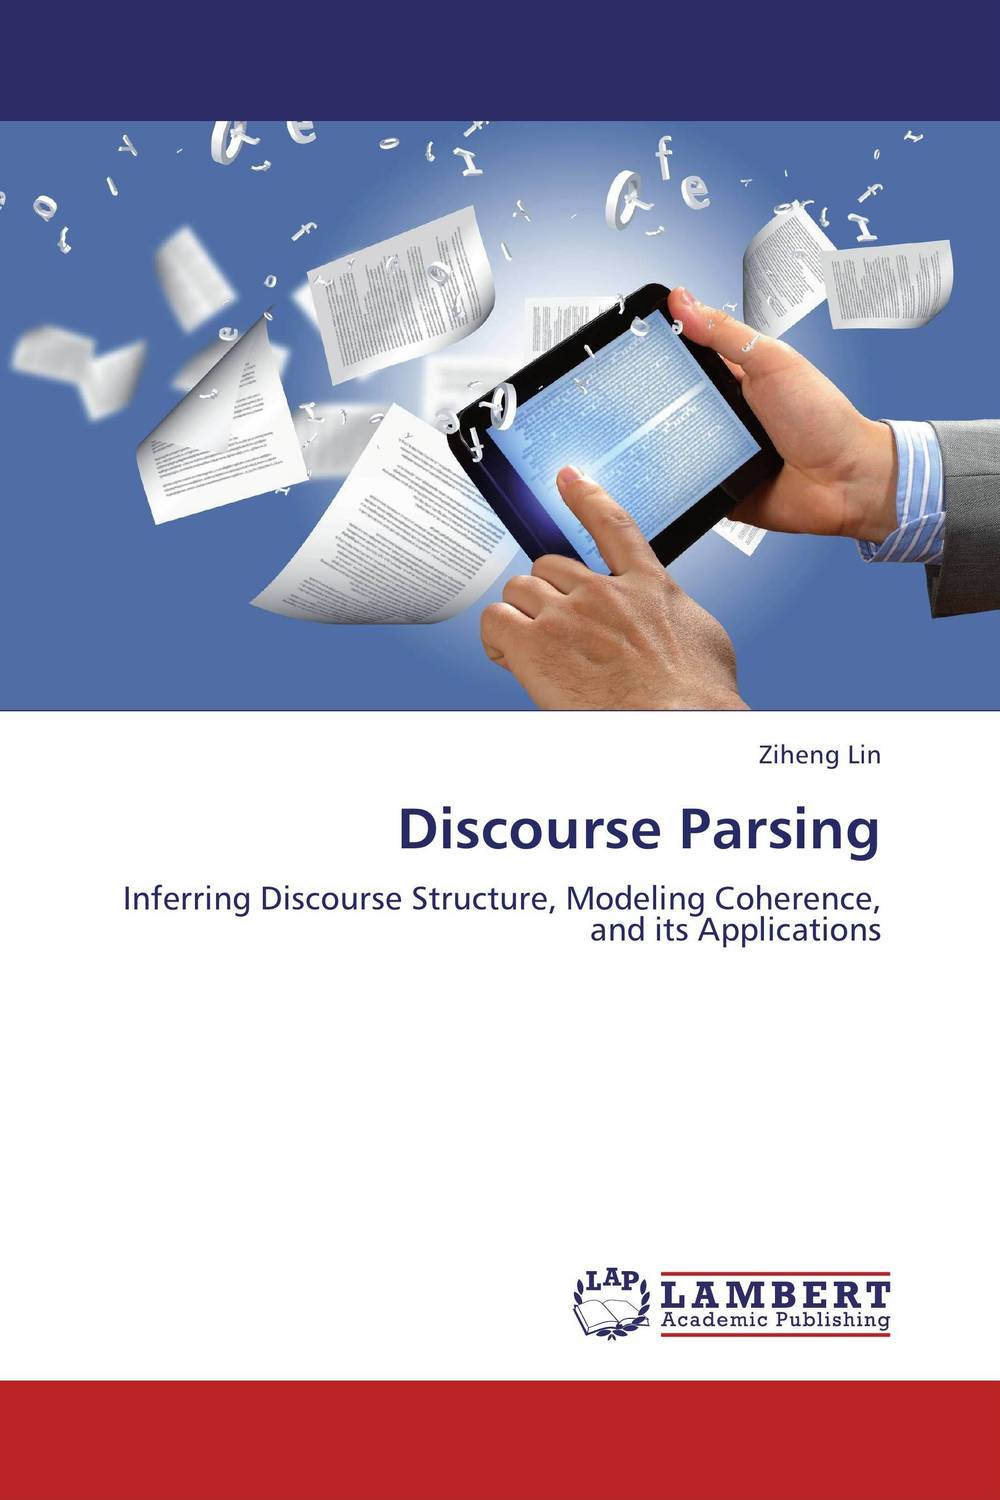 Discourse Parsing driven to distraction